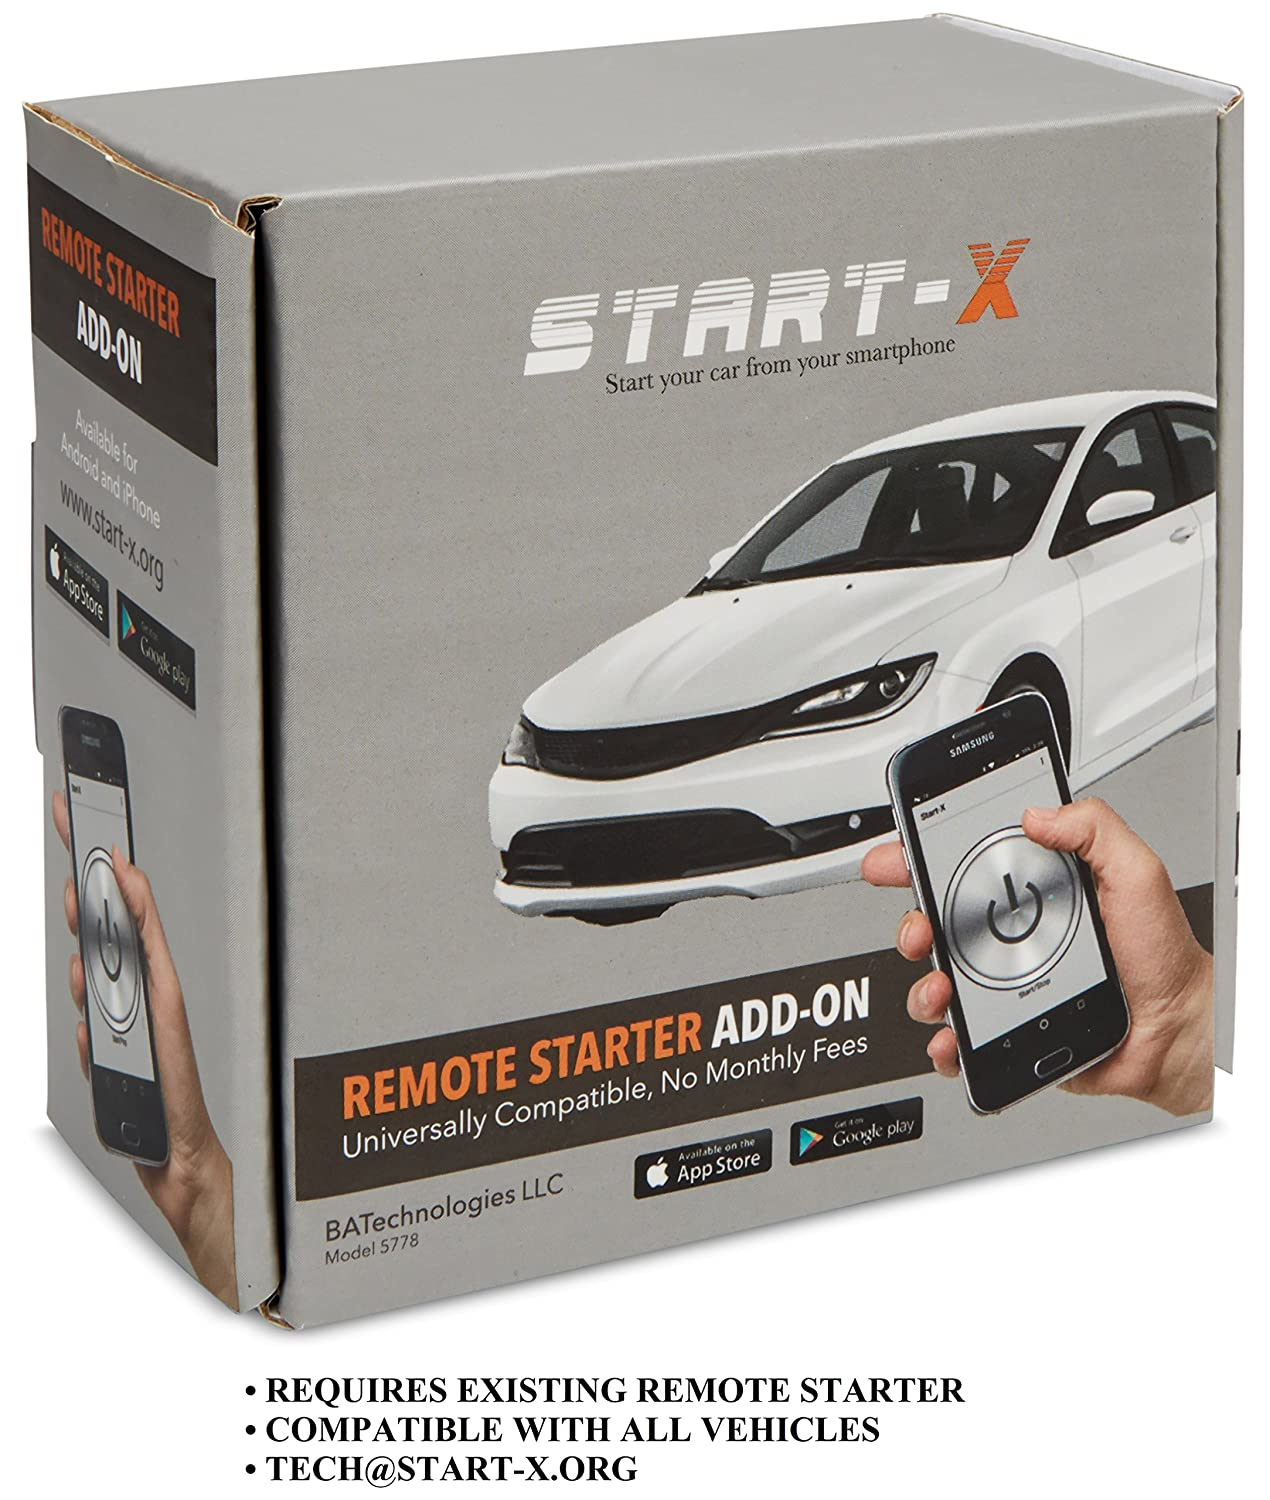 START-X REMOTE STARTER SMART PHONE ADD-ON NO MONTHLY FEES